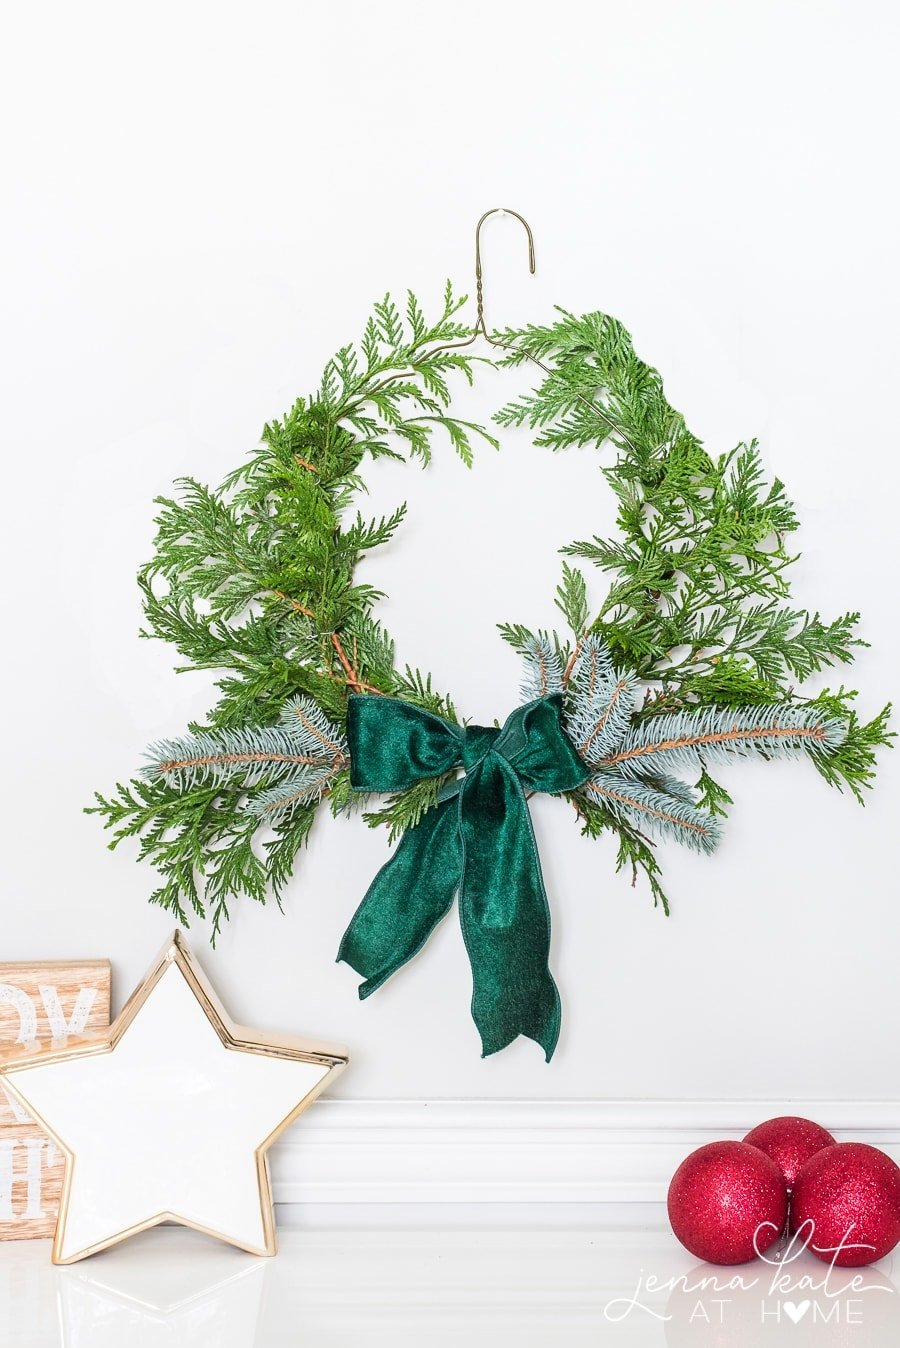 DIY Wire Hanger Evergreen Christmas Wreath - Jenna Kate at Home